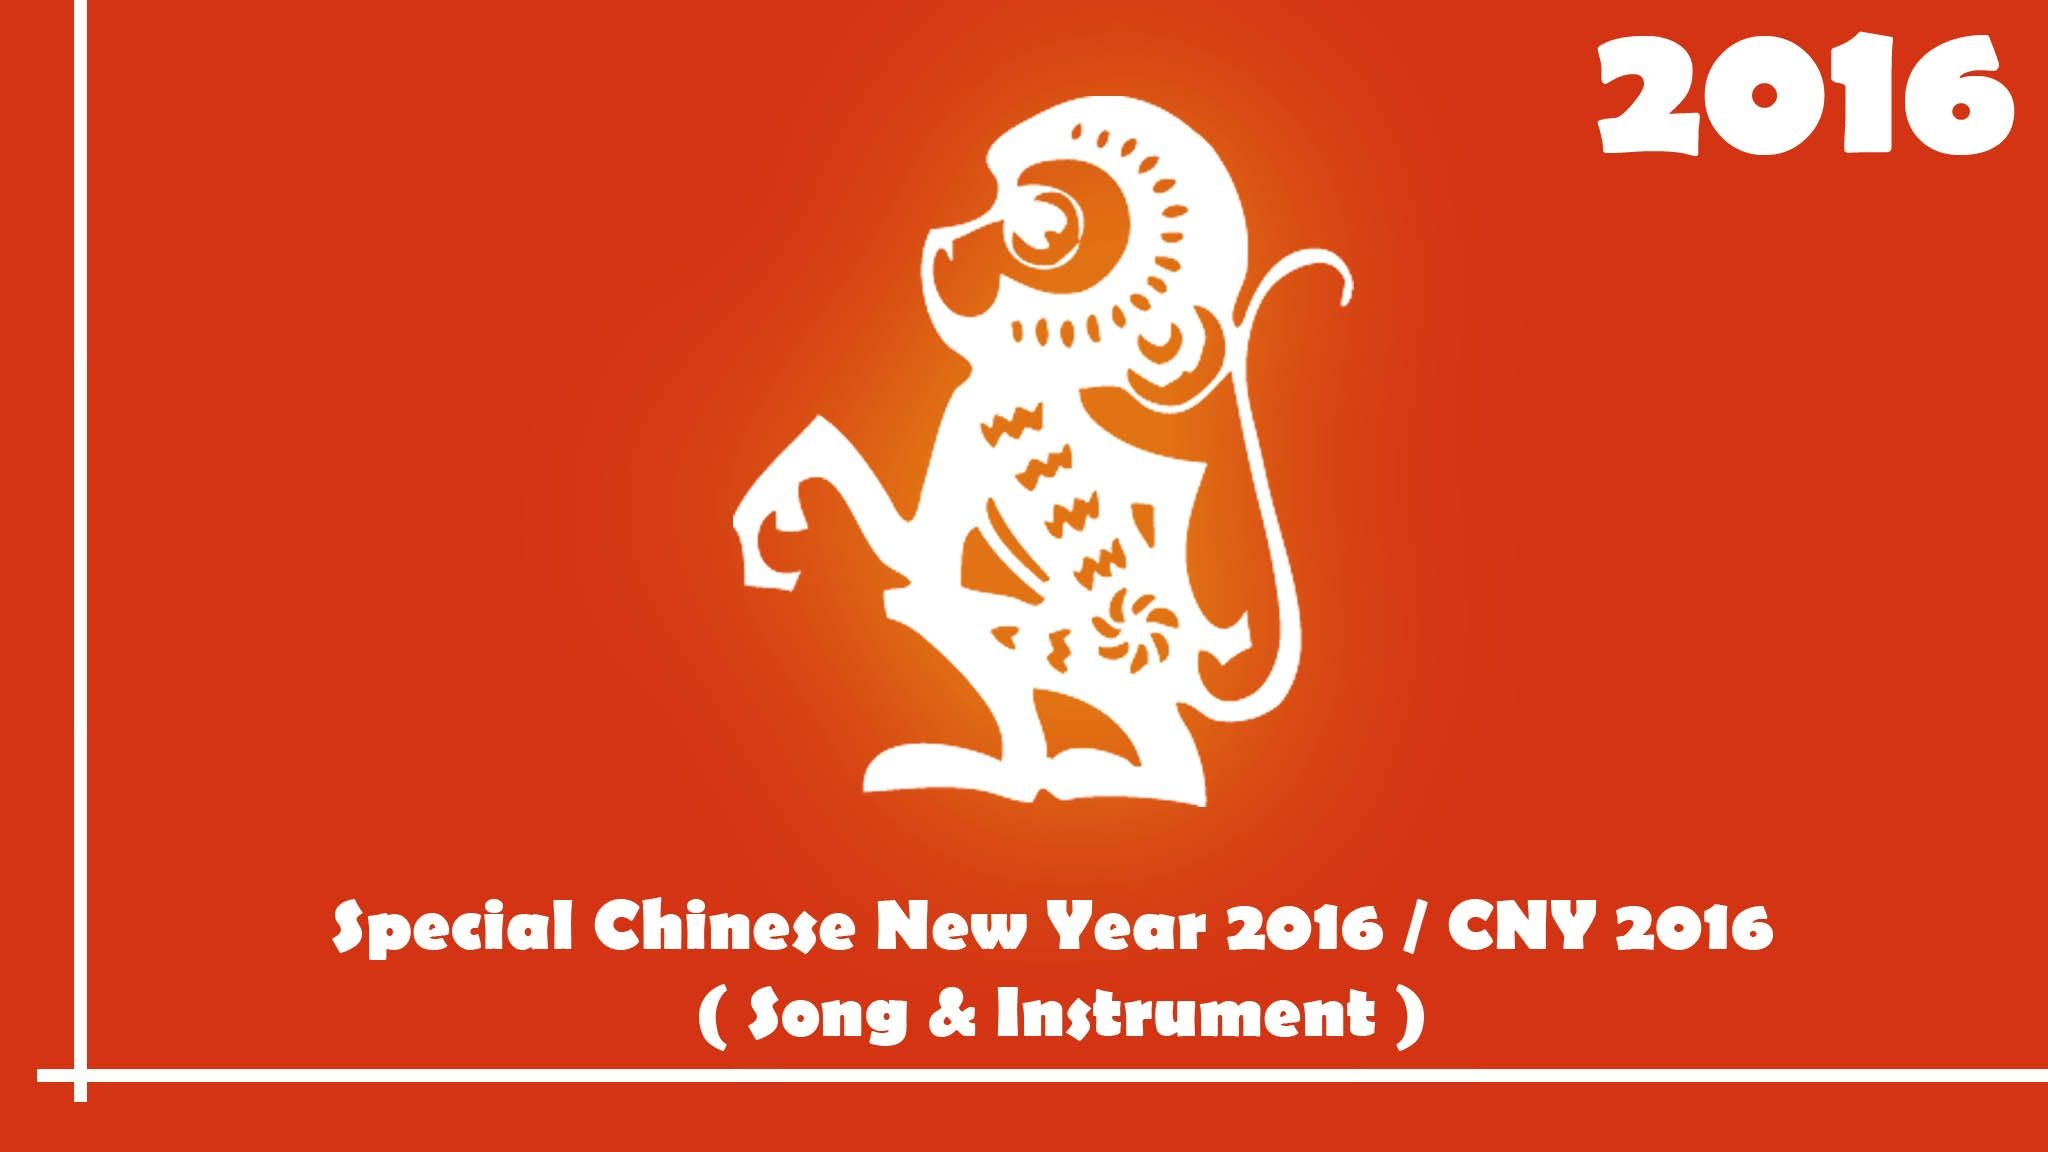 special chinese new year 2016 cny 2016 - When Is Chinese New Year 2016